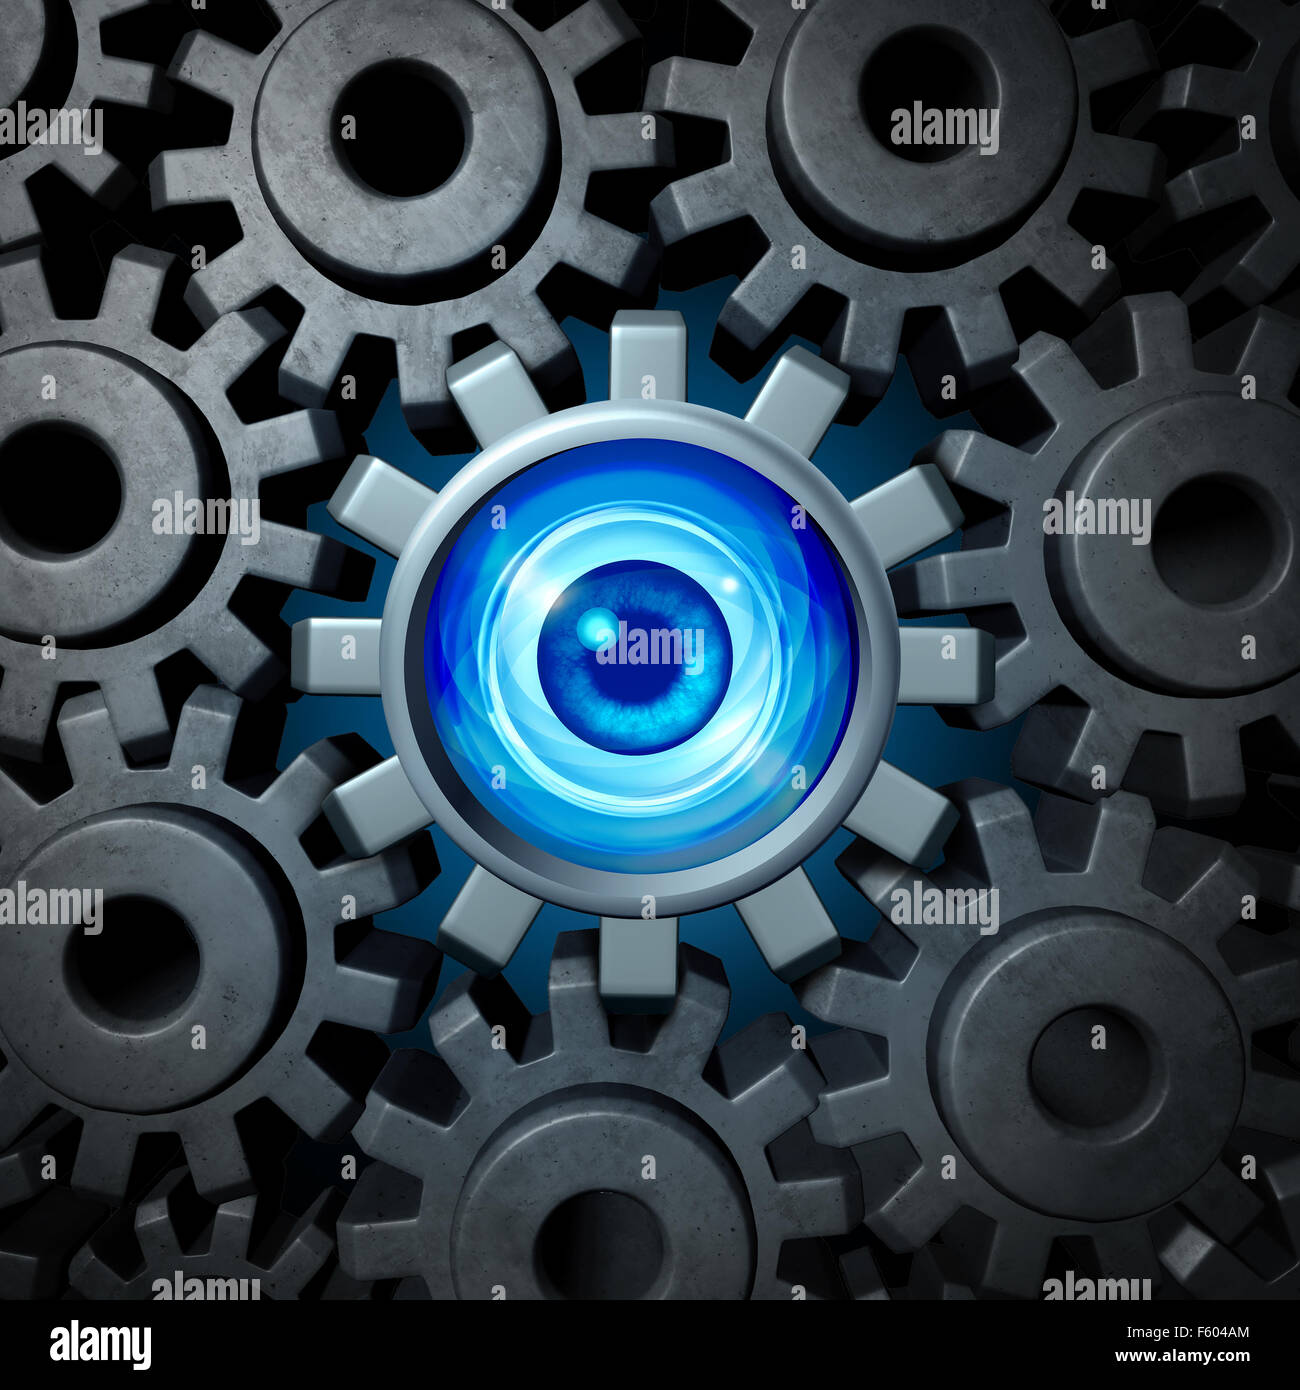 Business supervision and vision concept and company security symbol as a group of connected gears and cog wheels - Stock Image